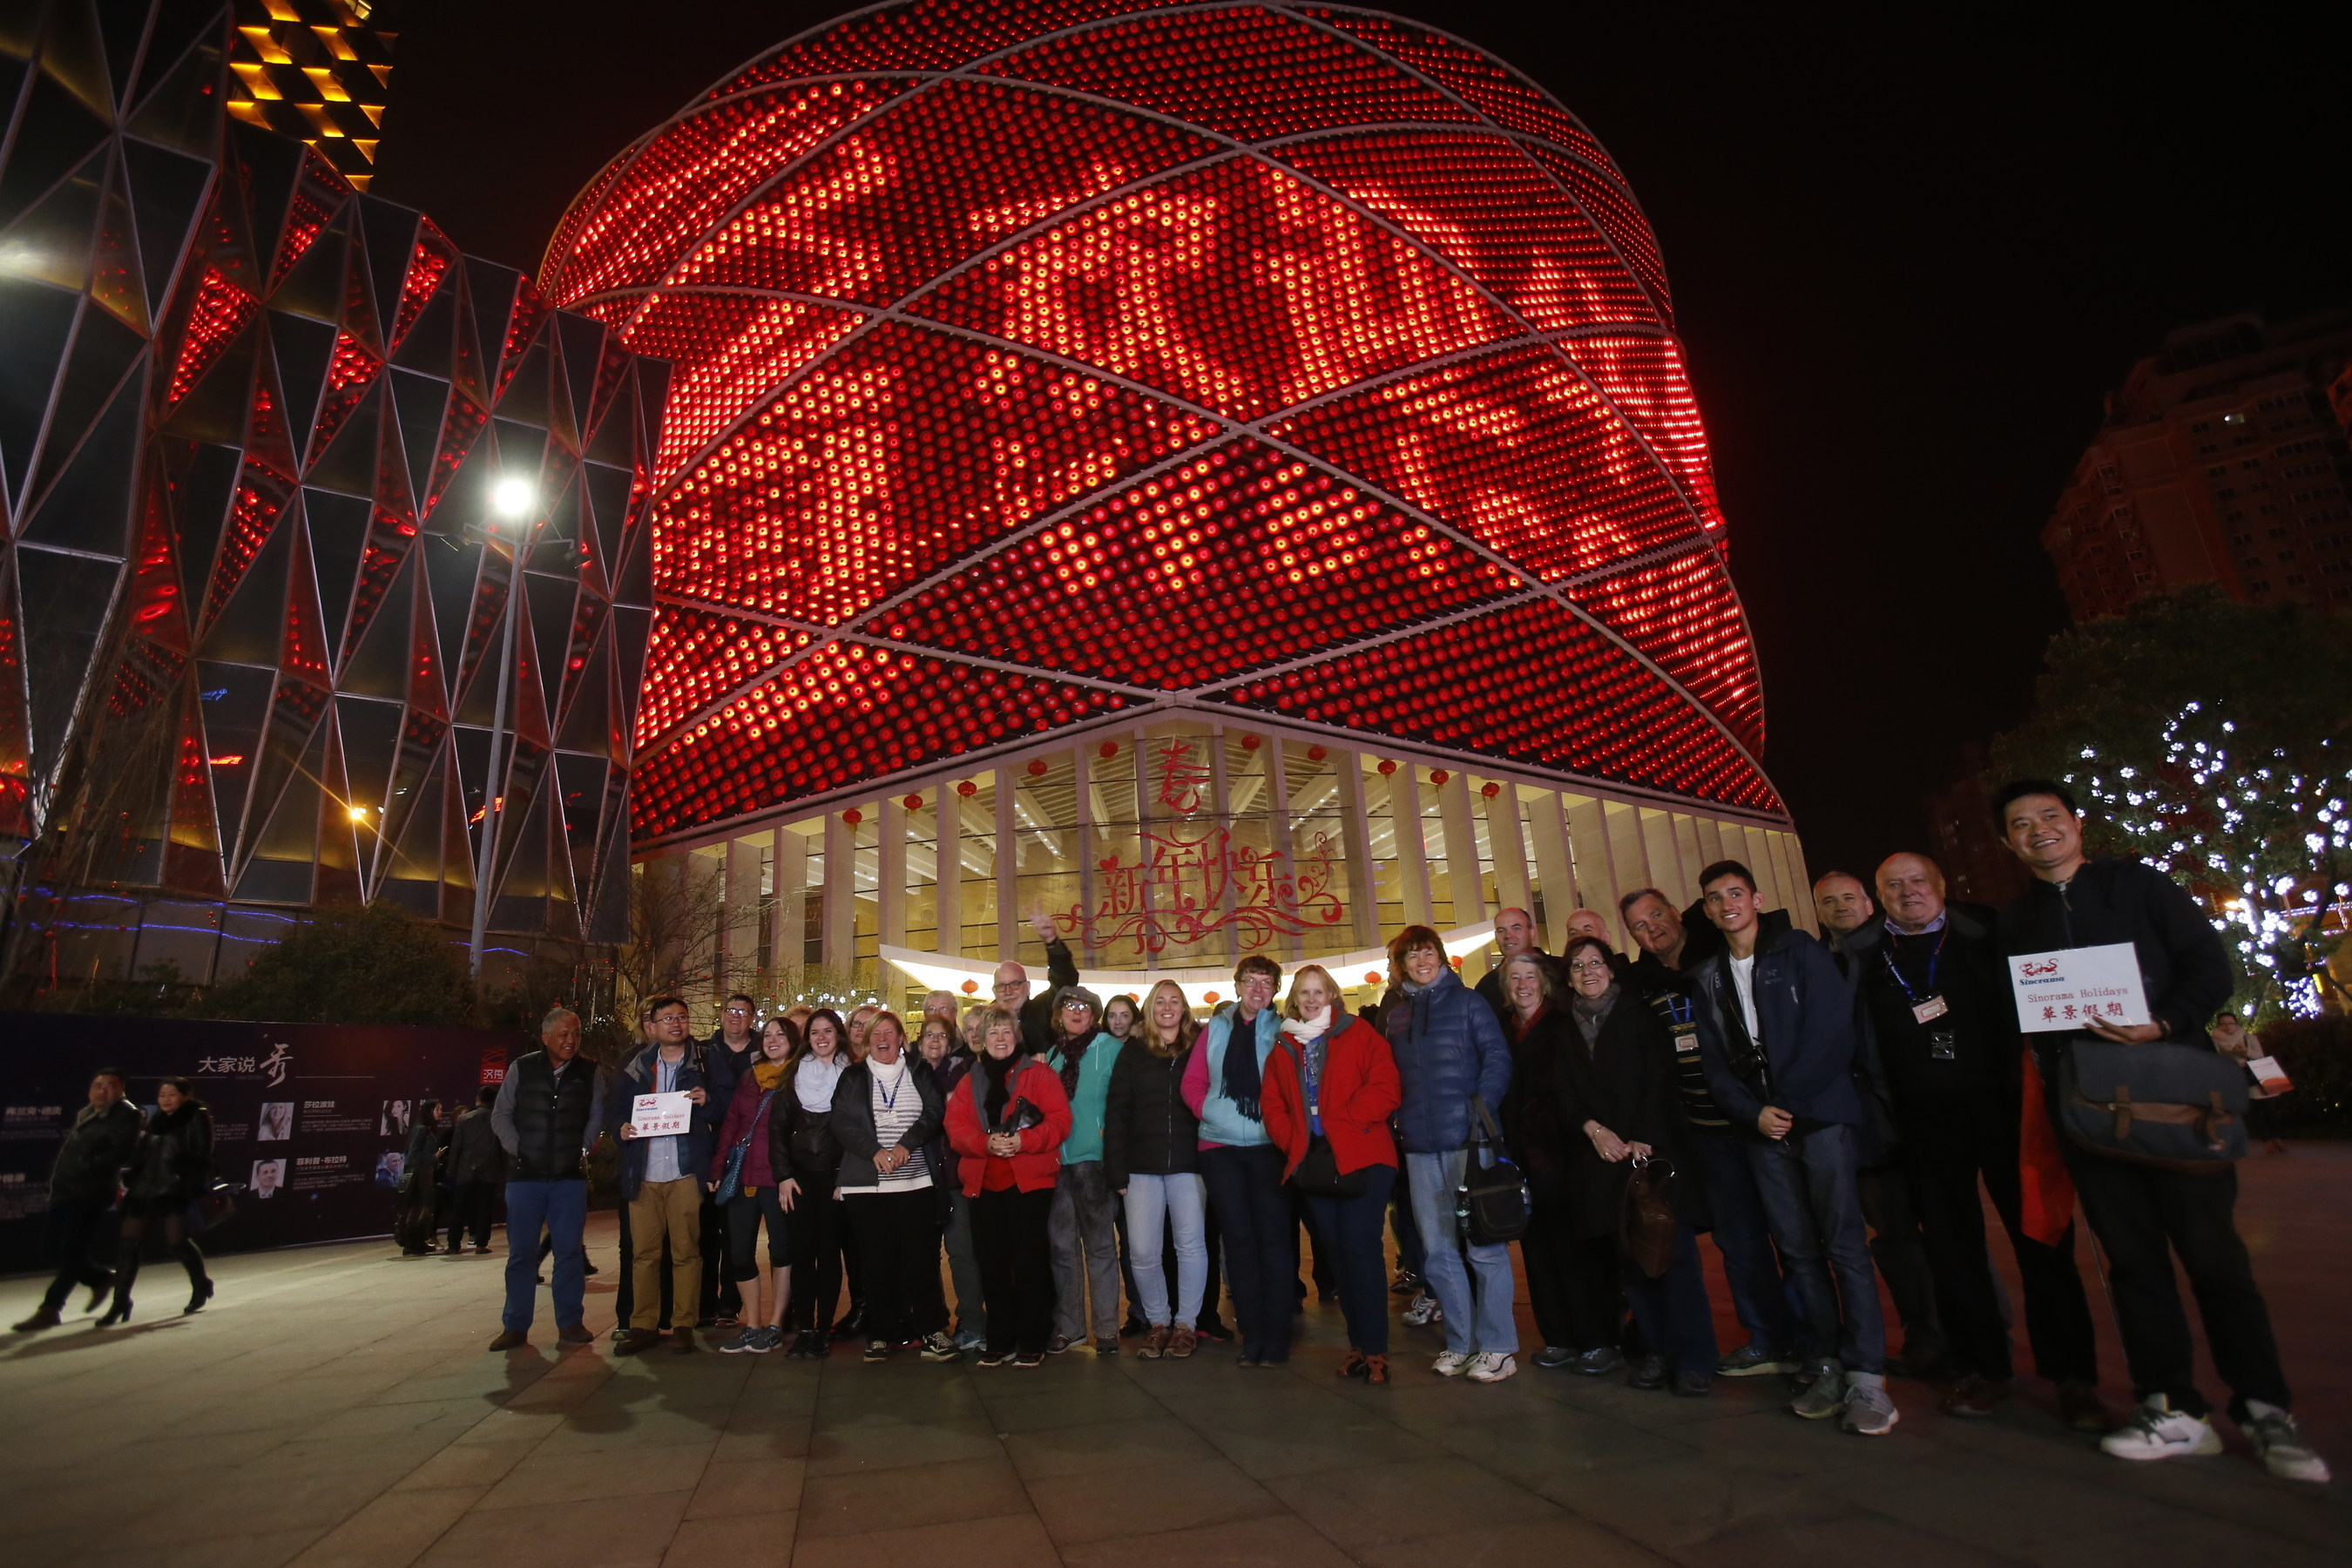 The international group was the first to watch the show at Wuhan's Han Show Theater